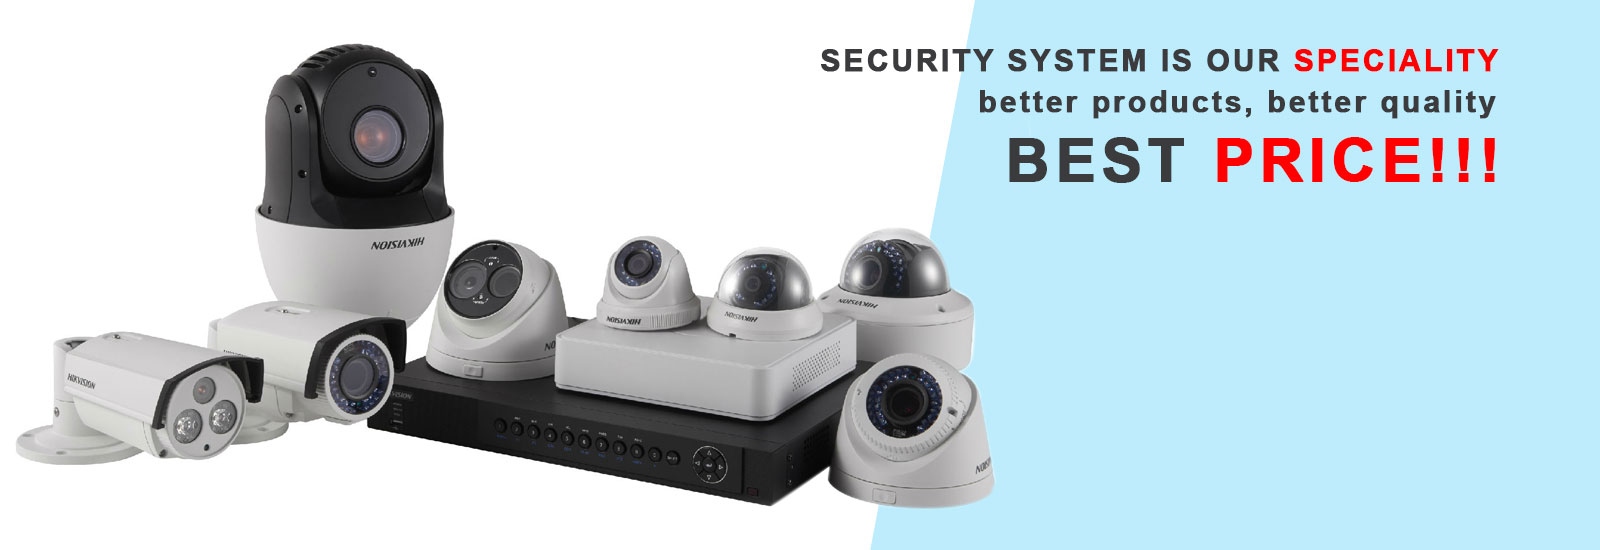 Comcast security camera hd video cameras full uts florida for Top 10 security systems for home